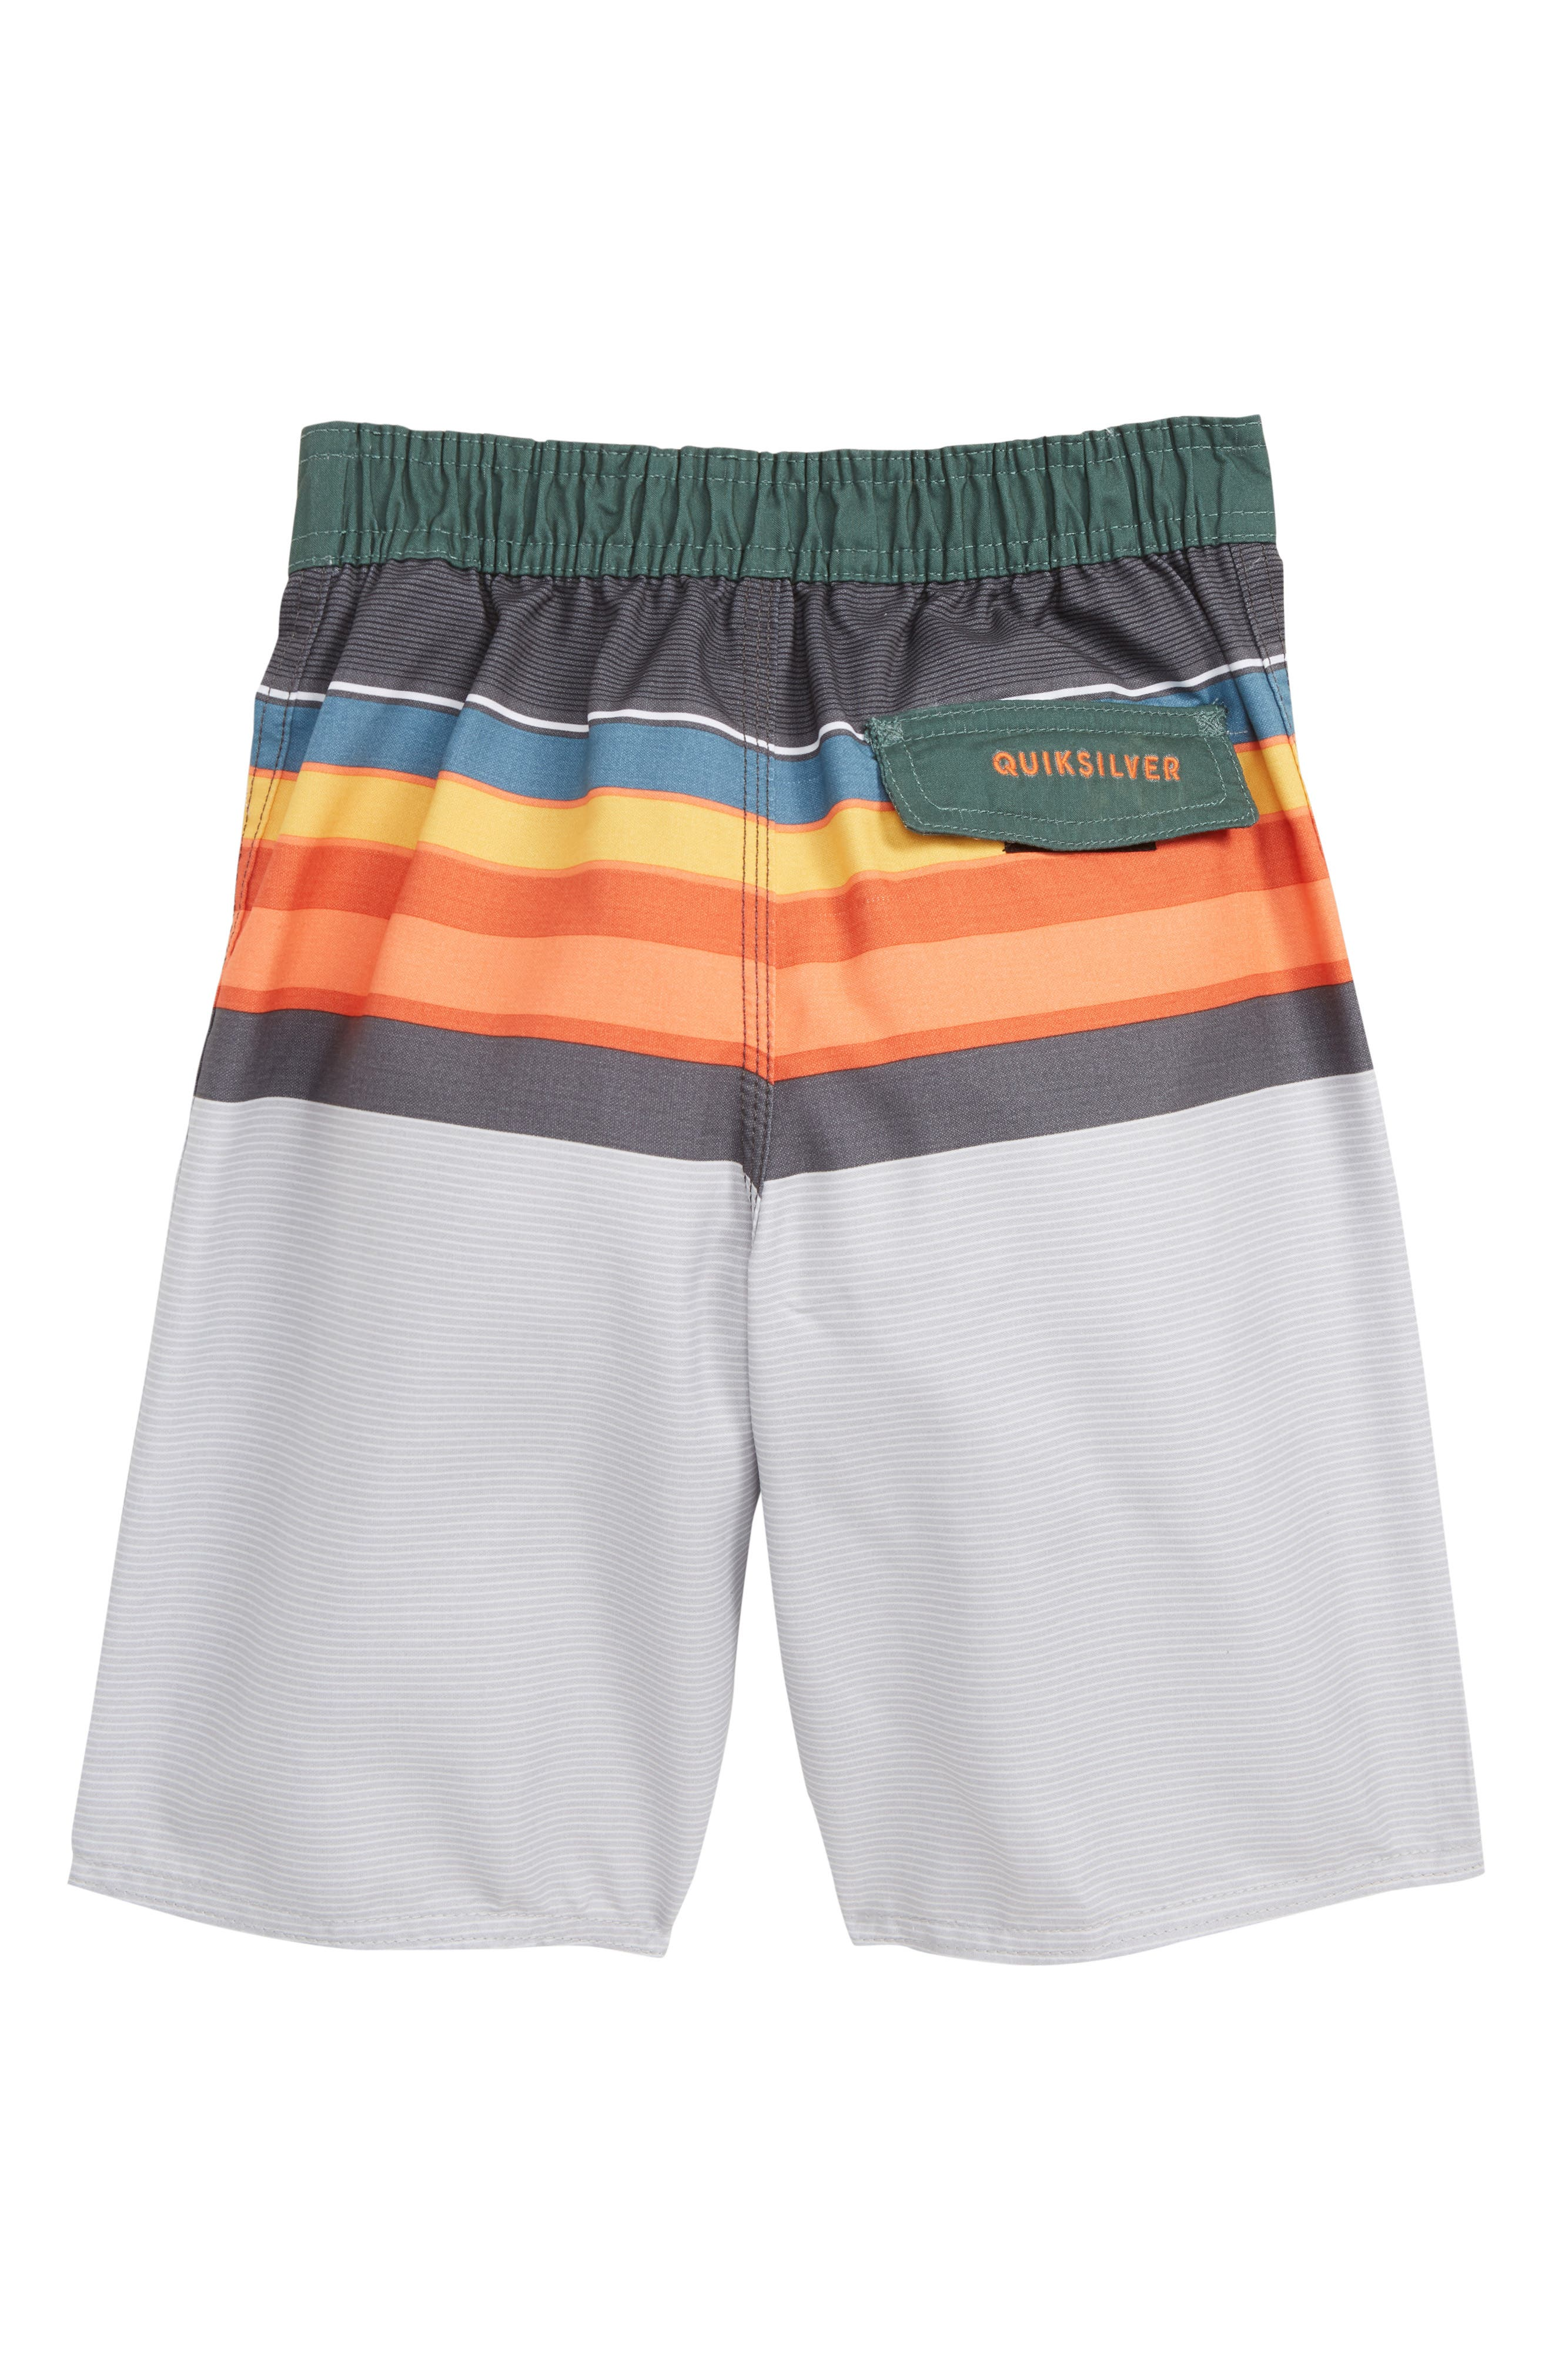 QUIKSILVER,                             Everyday Swell Vision Board Shorts,                             Alternate thumbnail 2, color,                             EBONY